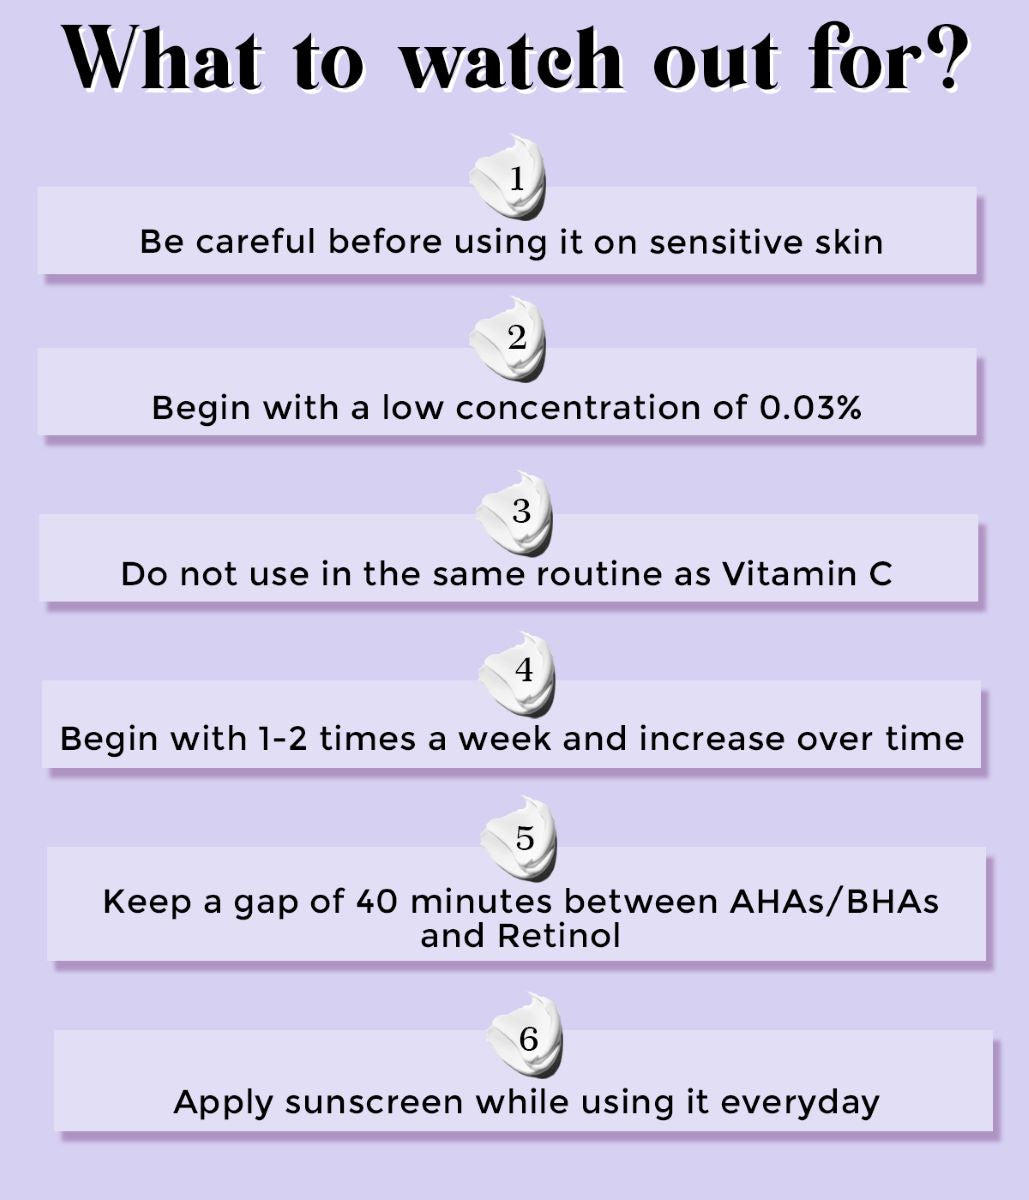 this is an image of what to watch out for when using retinol in skincare on www.sublimelife.in